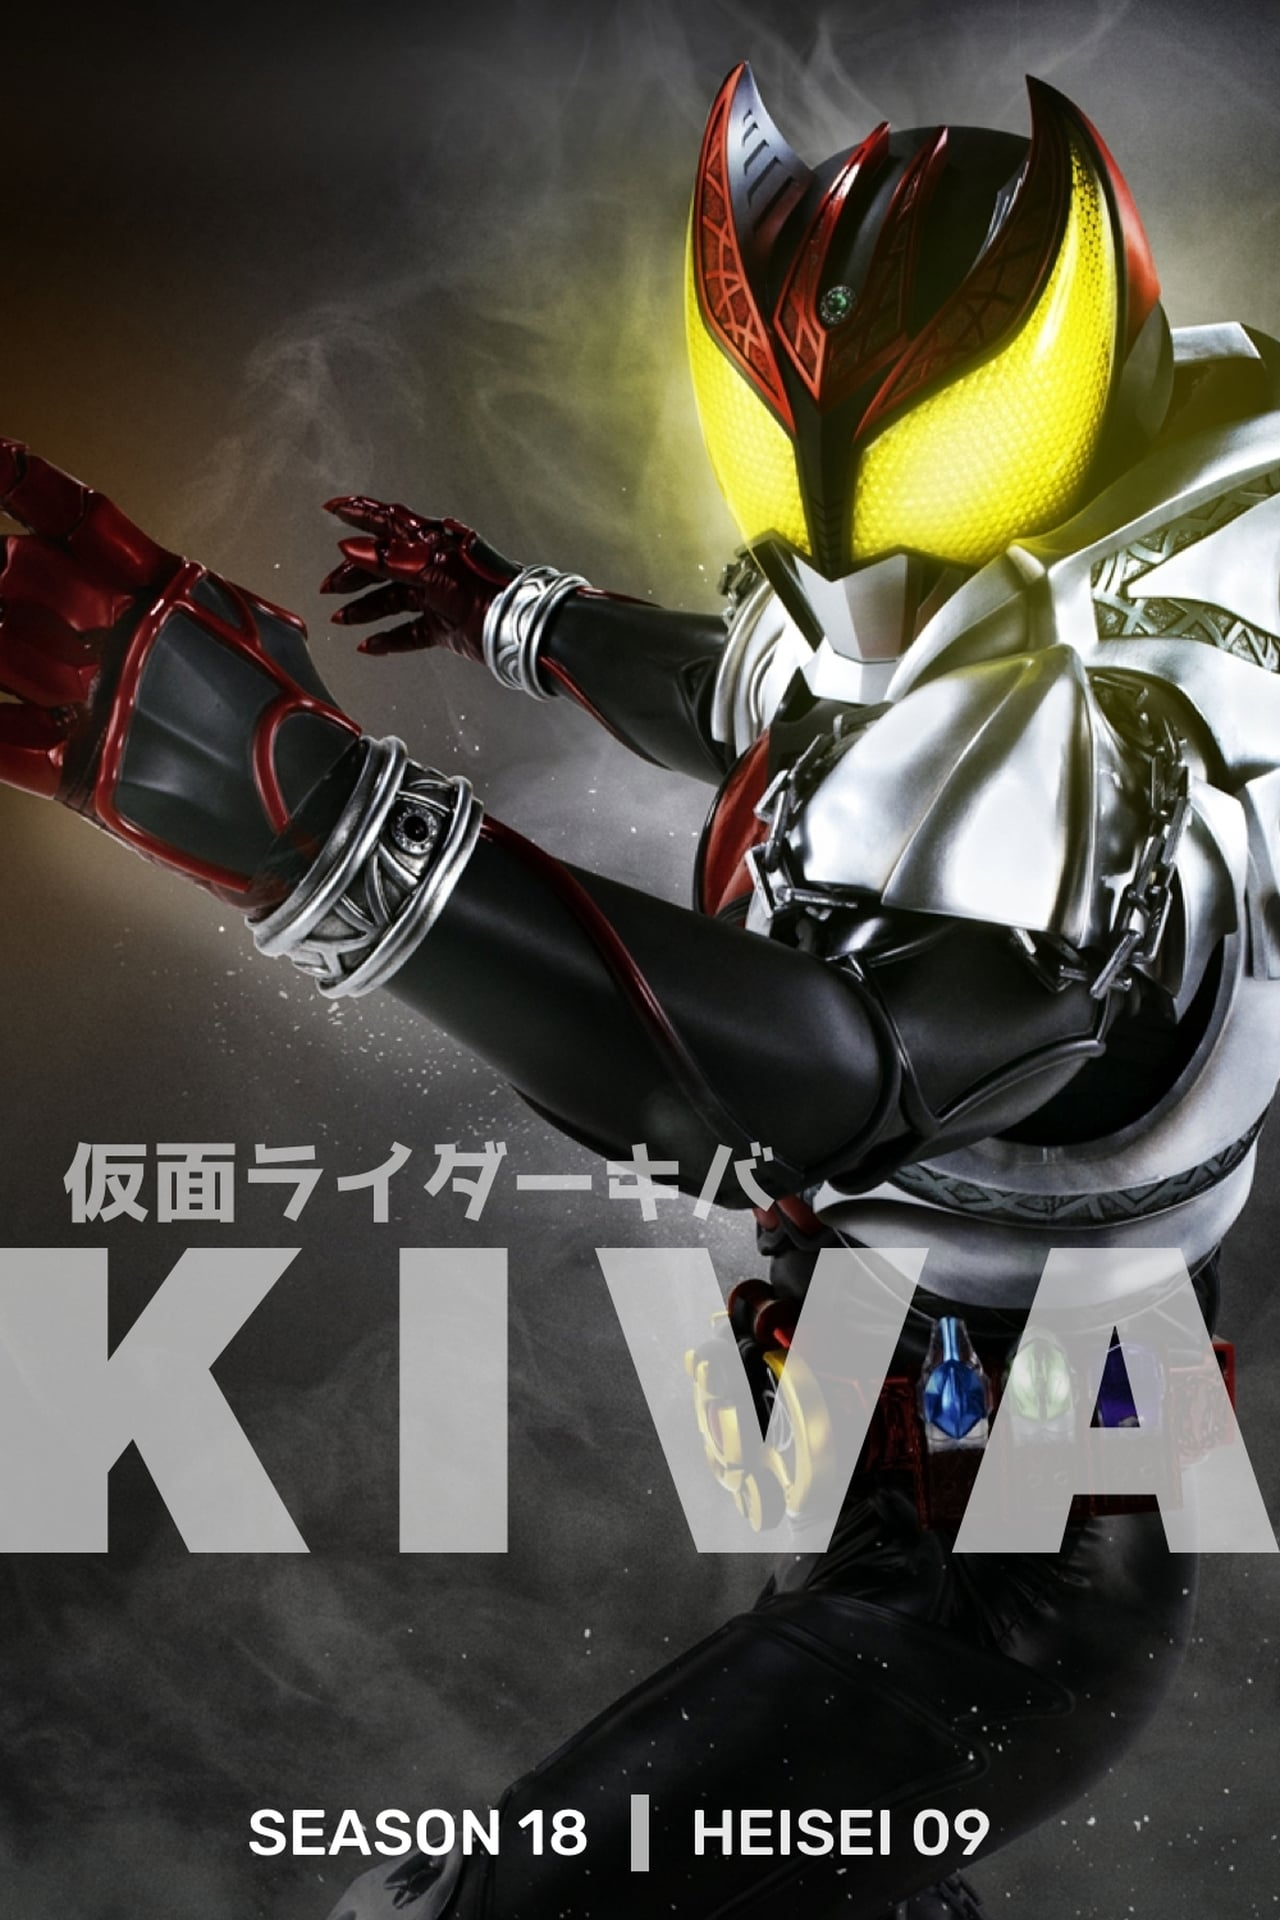 Watch Kamen Rider Season 18 Online